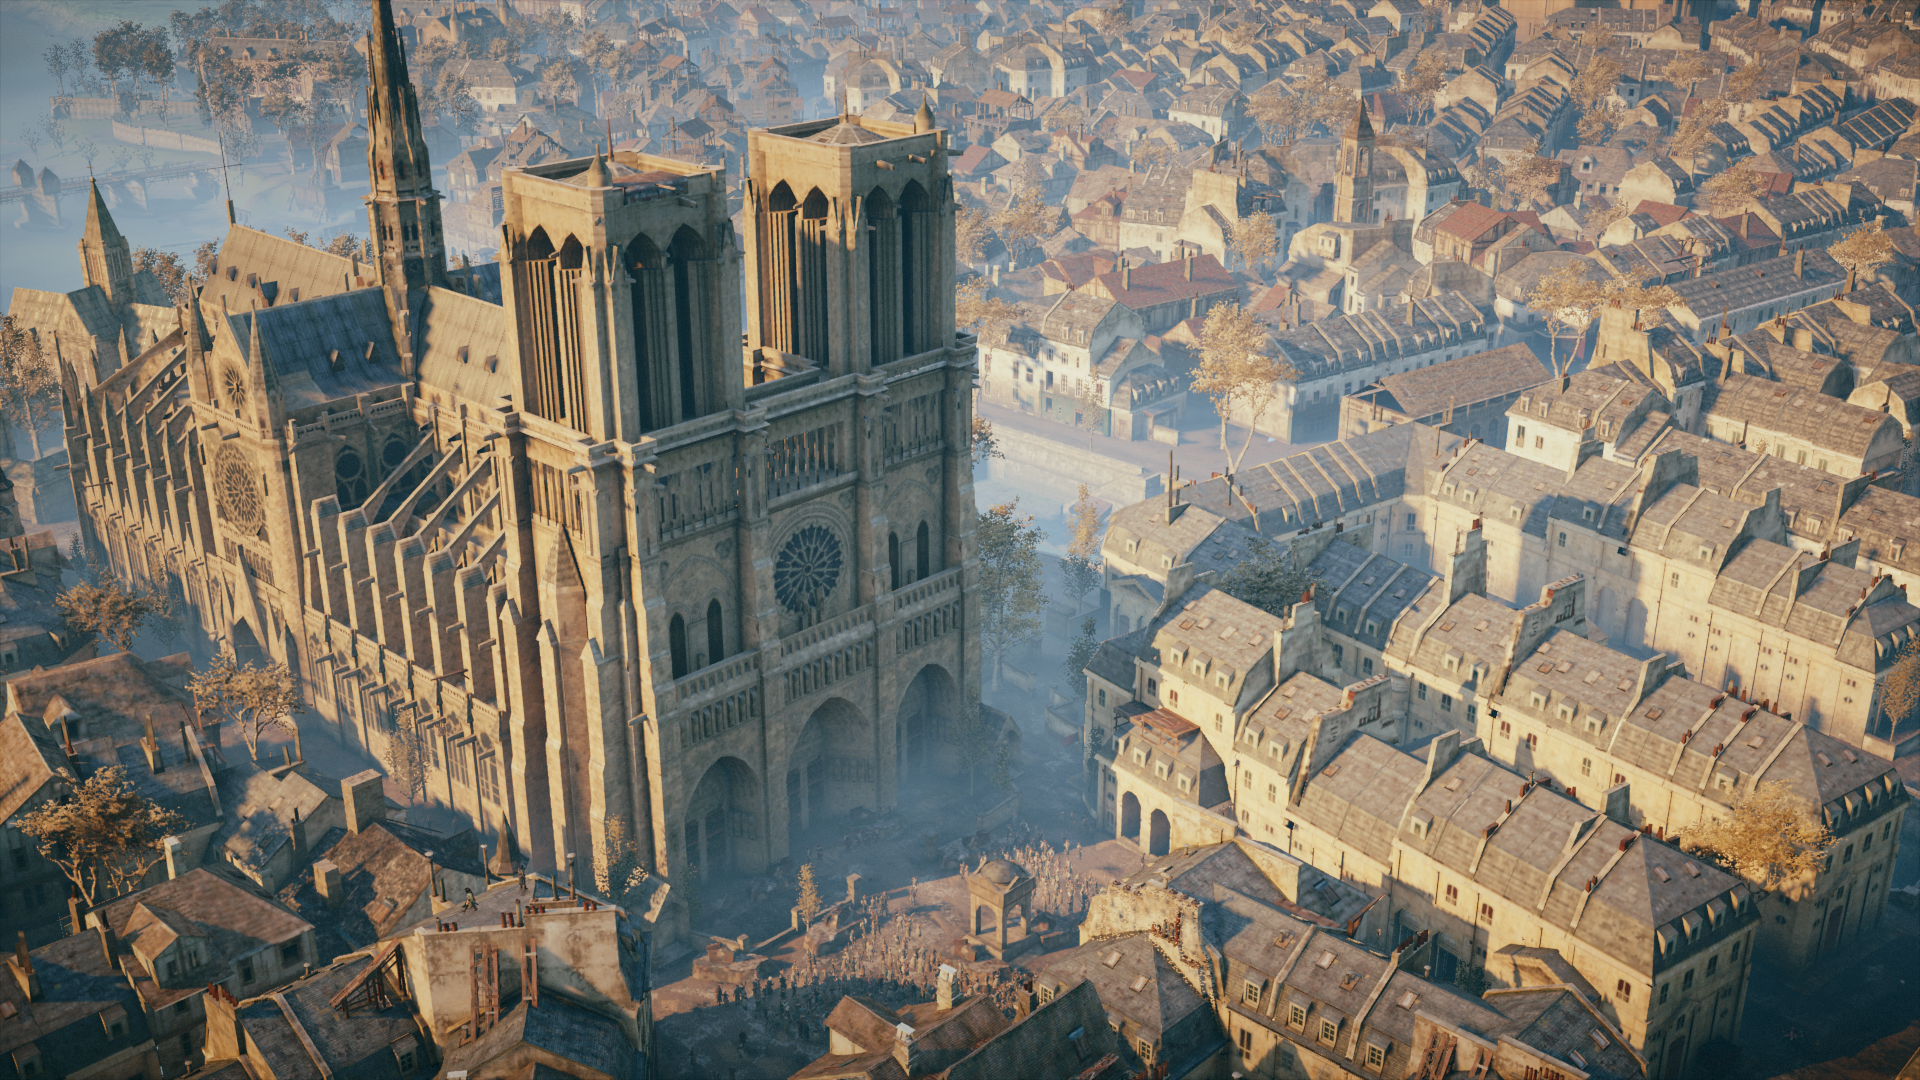 http://vignette2.wikia.nocookie.net/assassinscreed/images/a/aa/ACU_Notre-Dame.png/revision/latest?cb=20150720000701